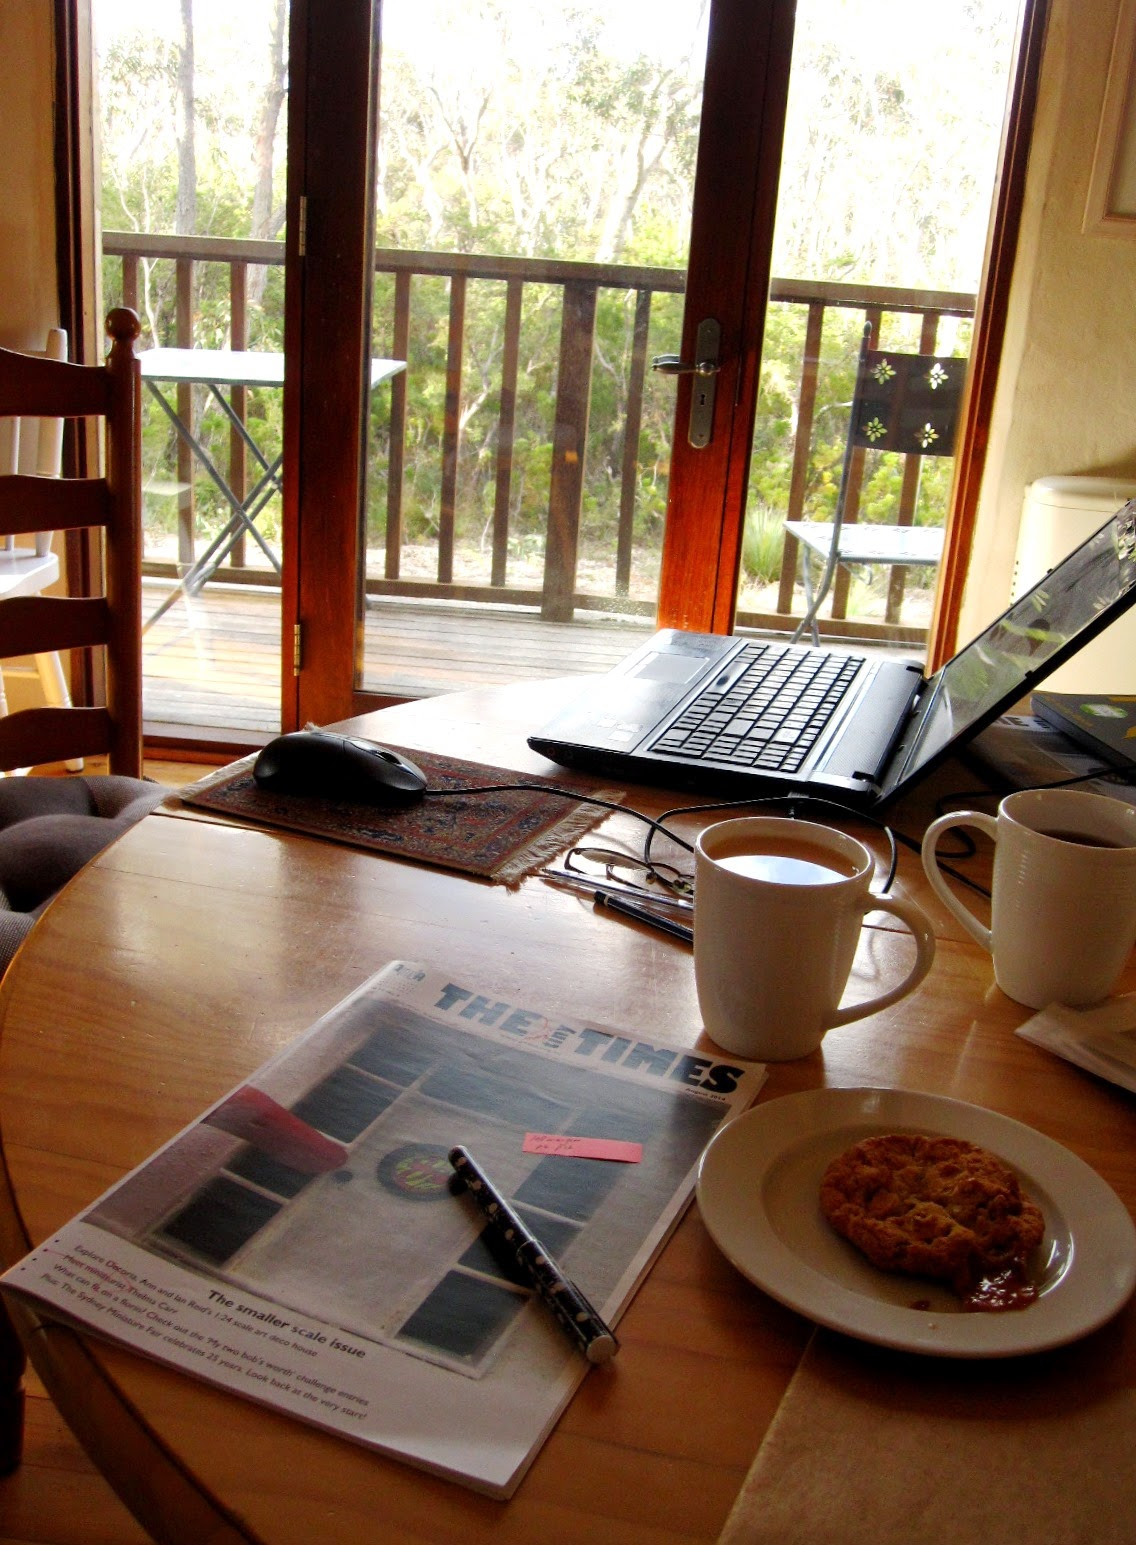 Dining table with two mugs of tea, a biscuit on a plate, a magazine with a pen on it and a laptop in the background.